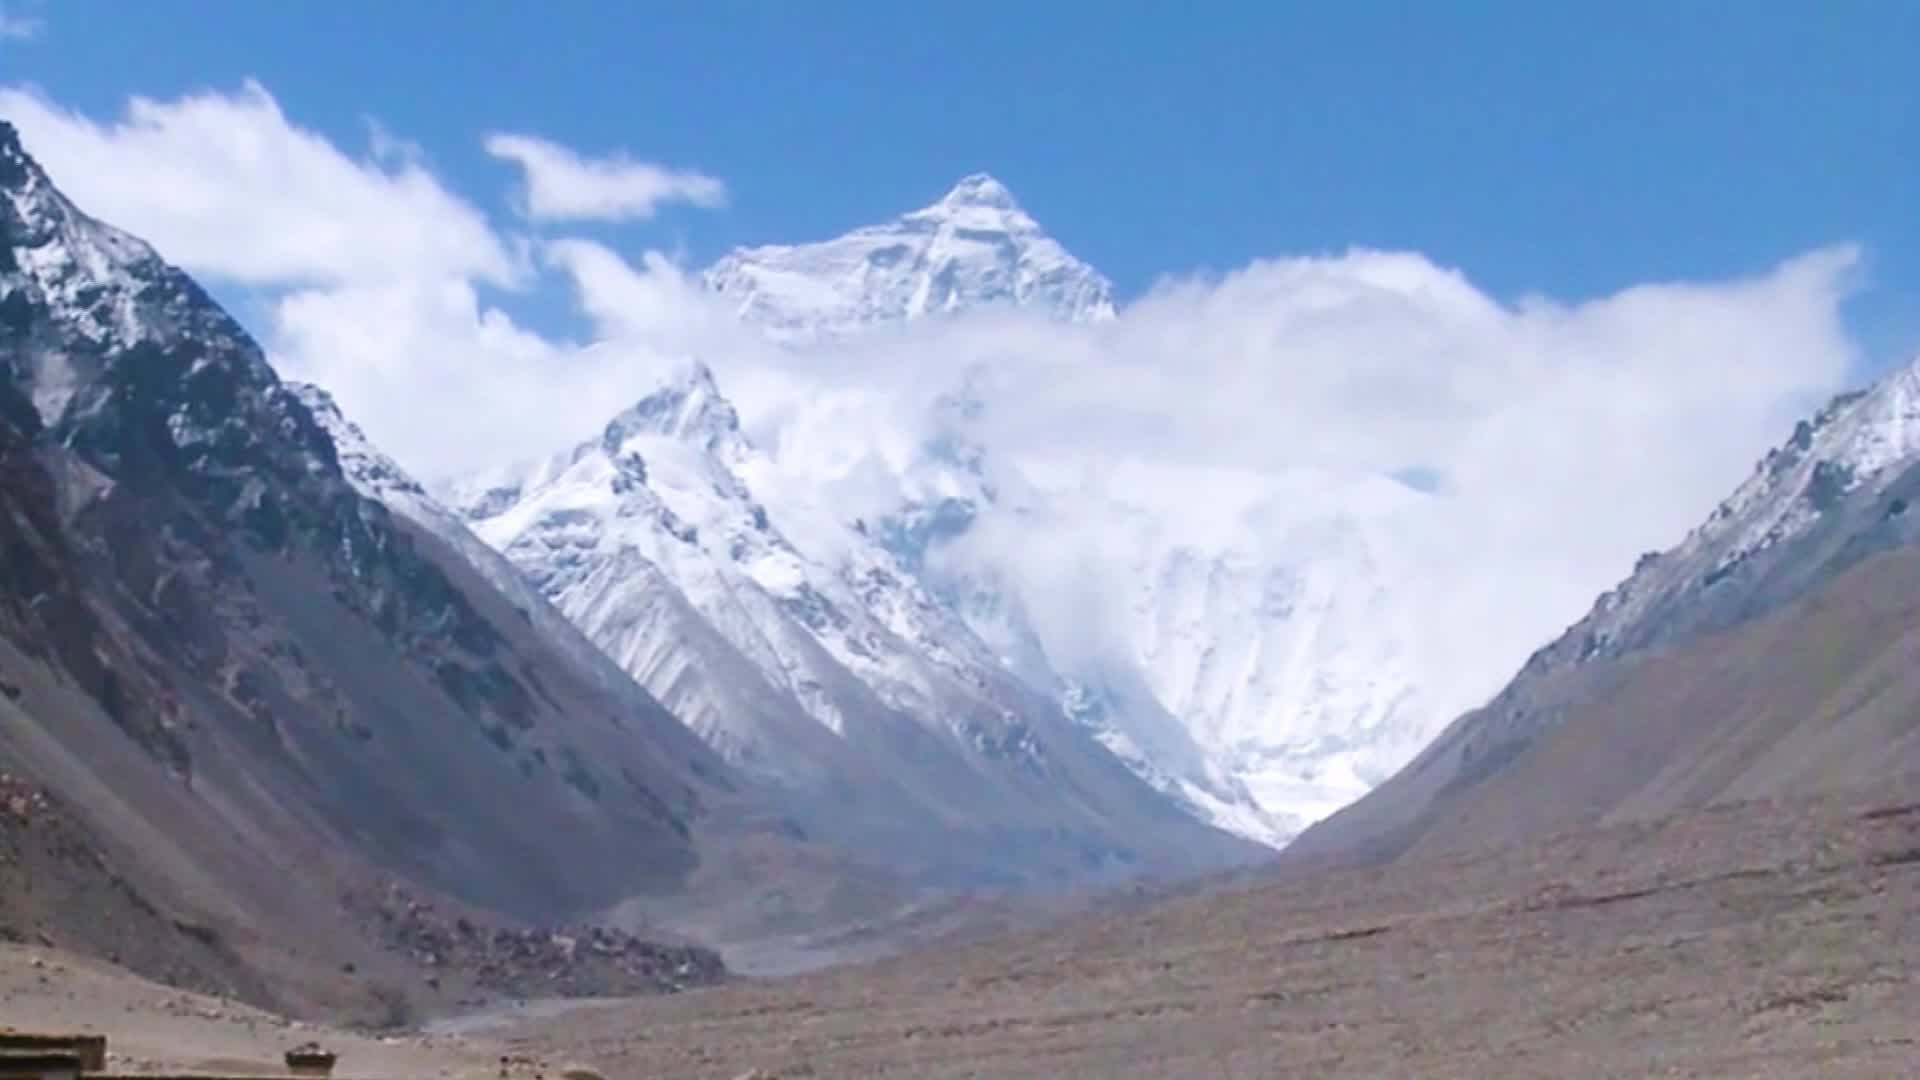 VIDEO: Melting glaciers on Mount Everest revealing bodies of dead climbers